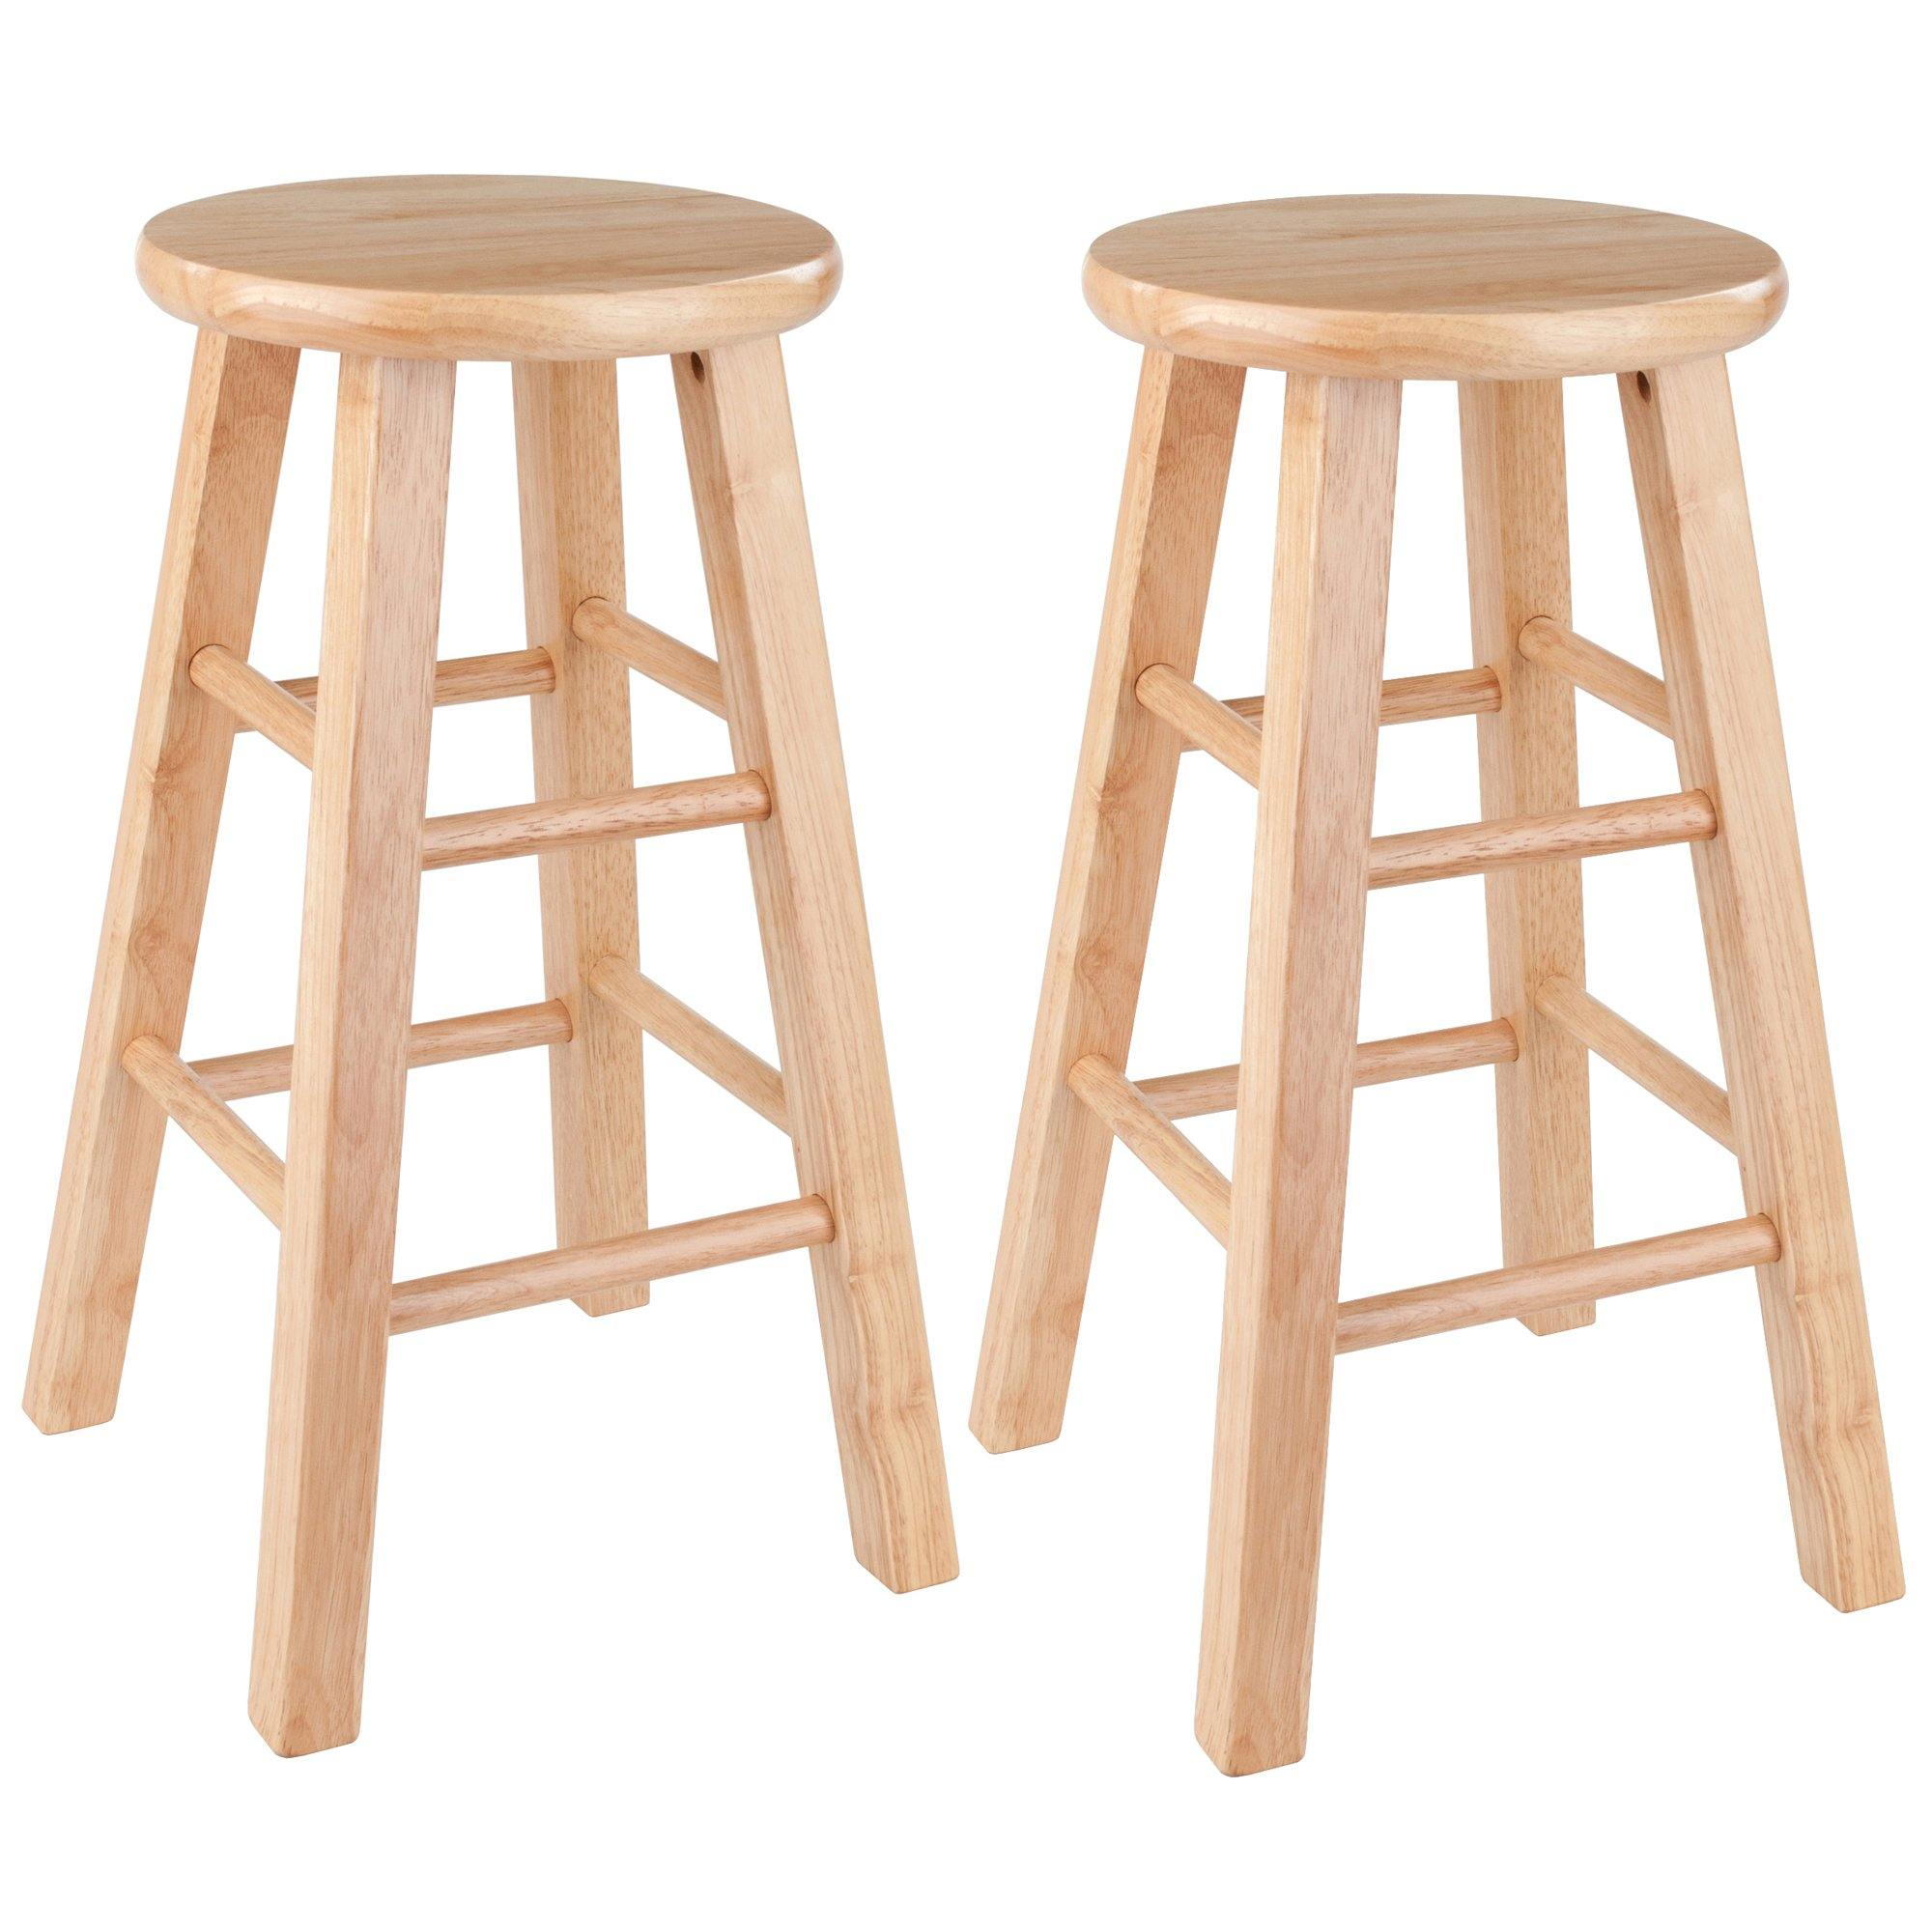 Pacey Counter Stools, 2-Pc Set, Natural - My USA Furniture